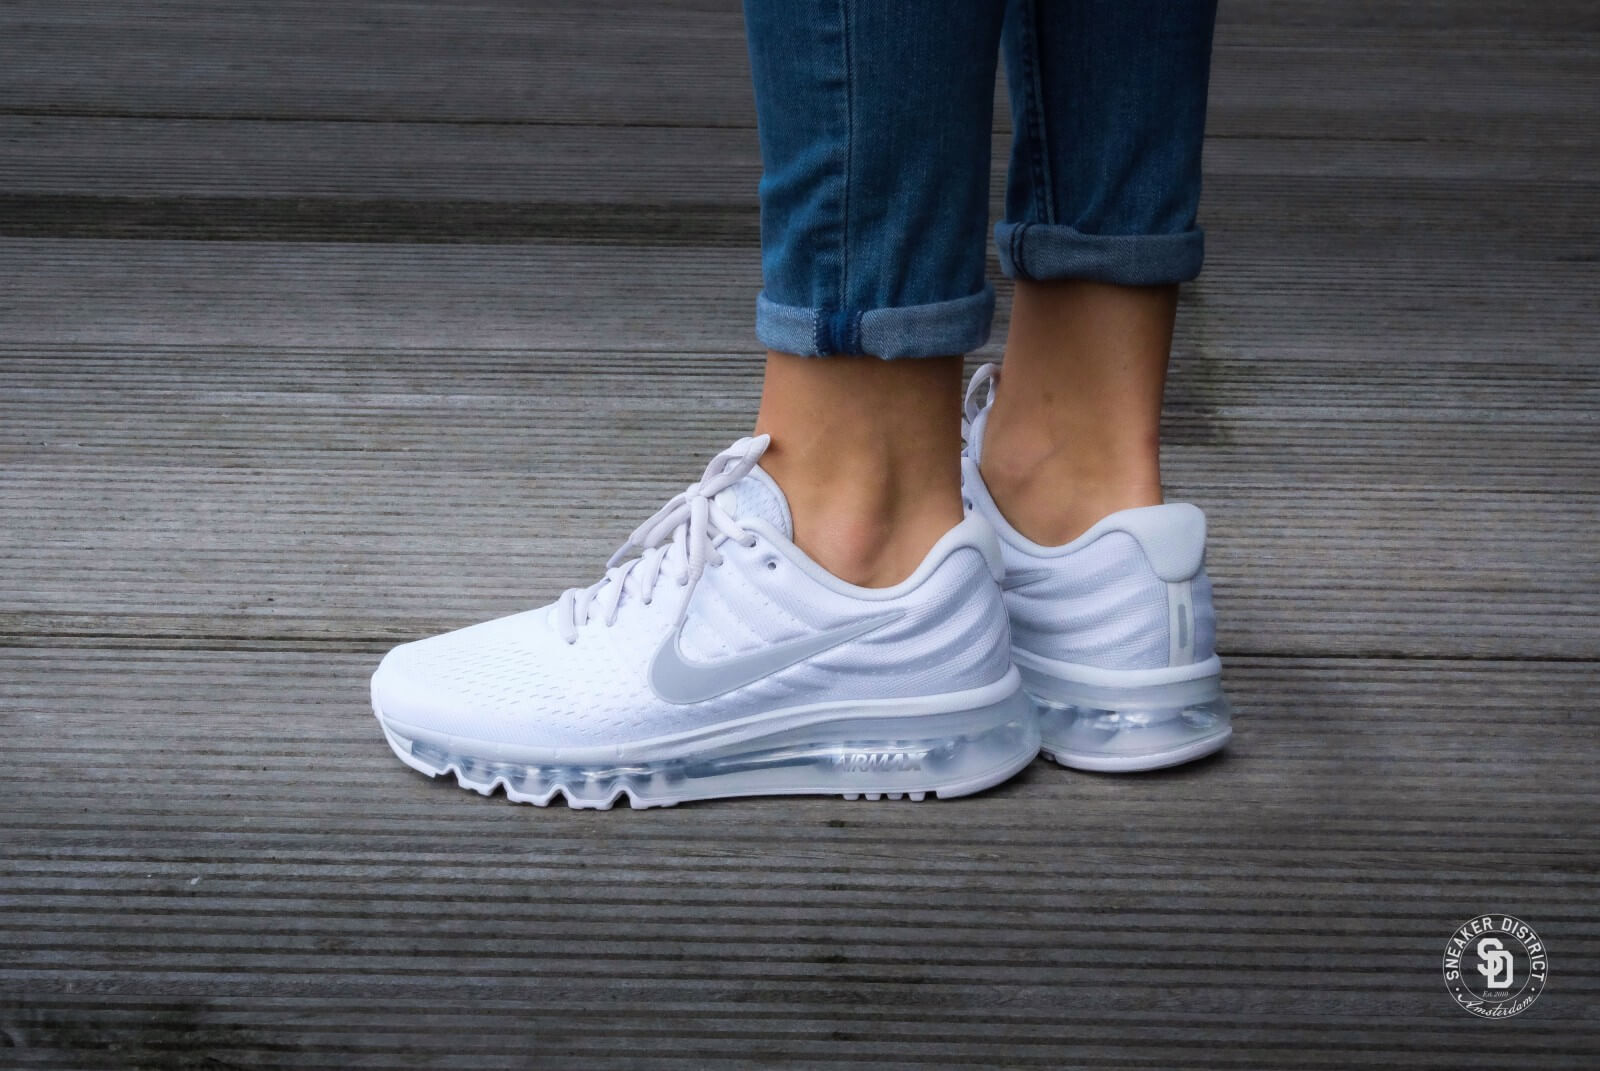 Nike Wmns Air Max 2017 Pure Platinum Wolf Grey White Off White 849560 009